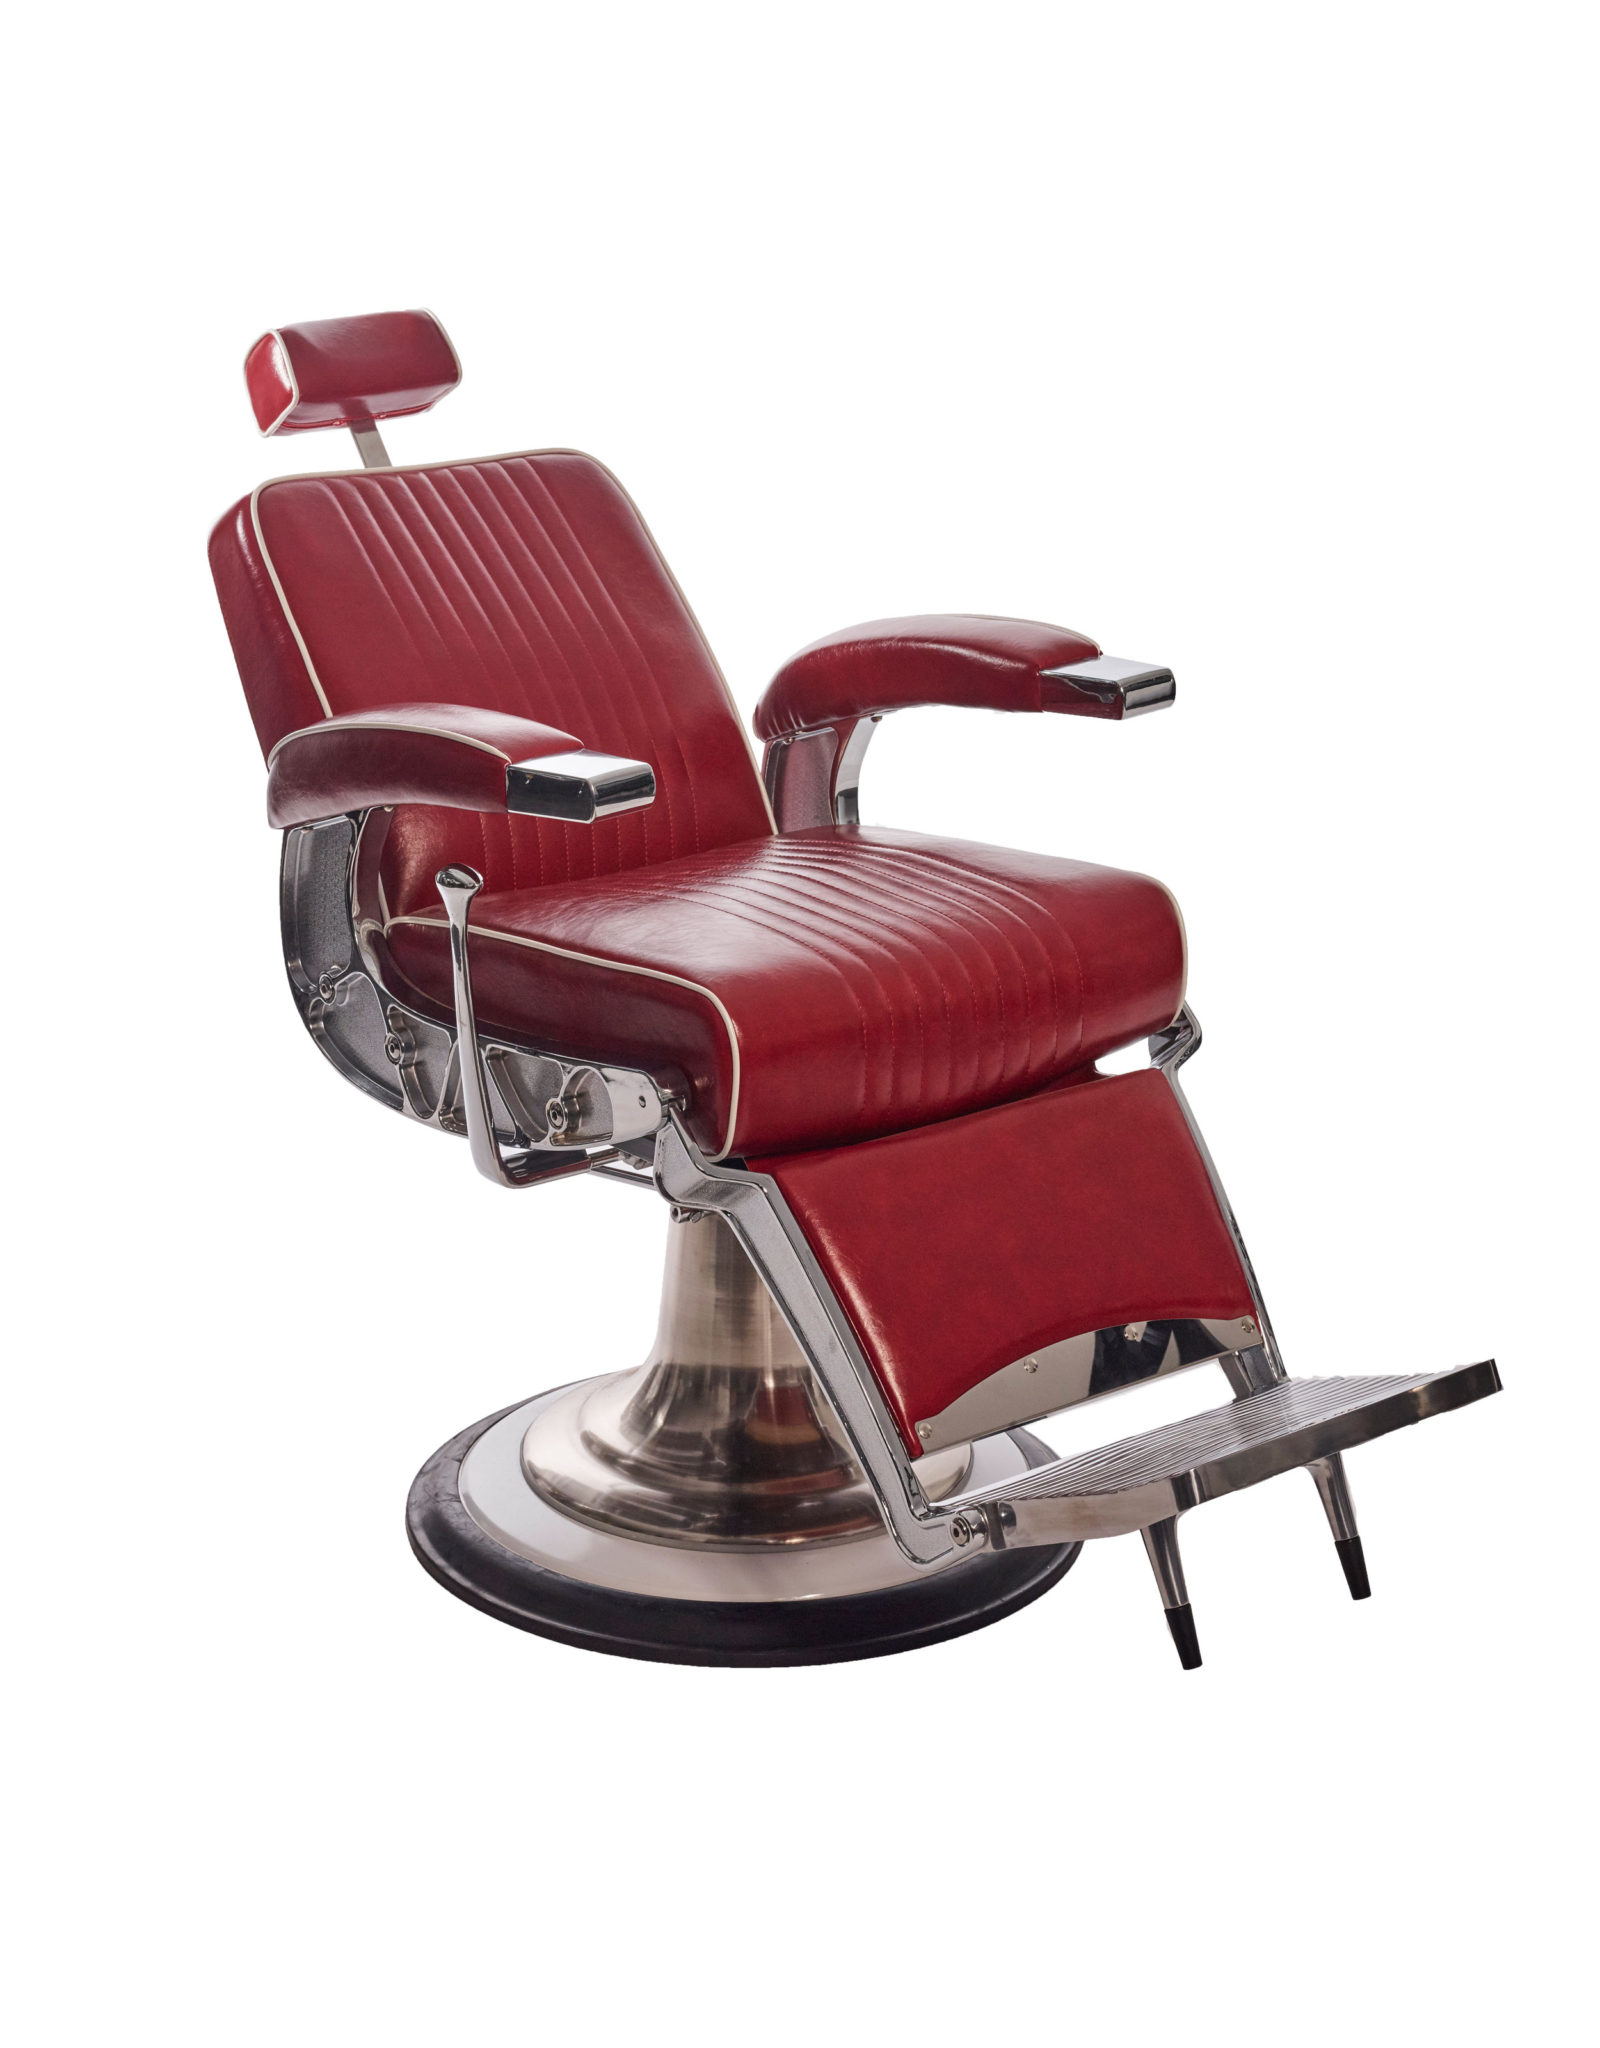 Red Barber Chair Salon Equipment Centre Red Tornado Barber Chair By Premier